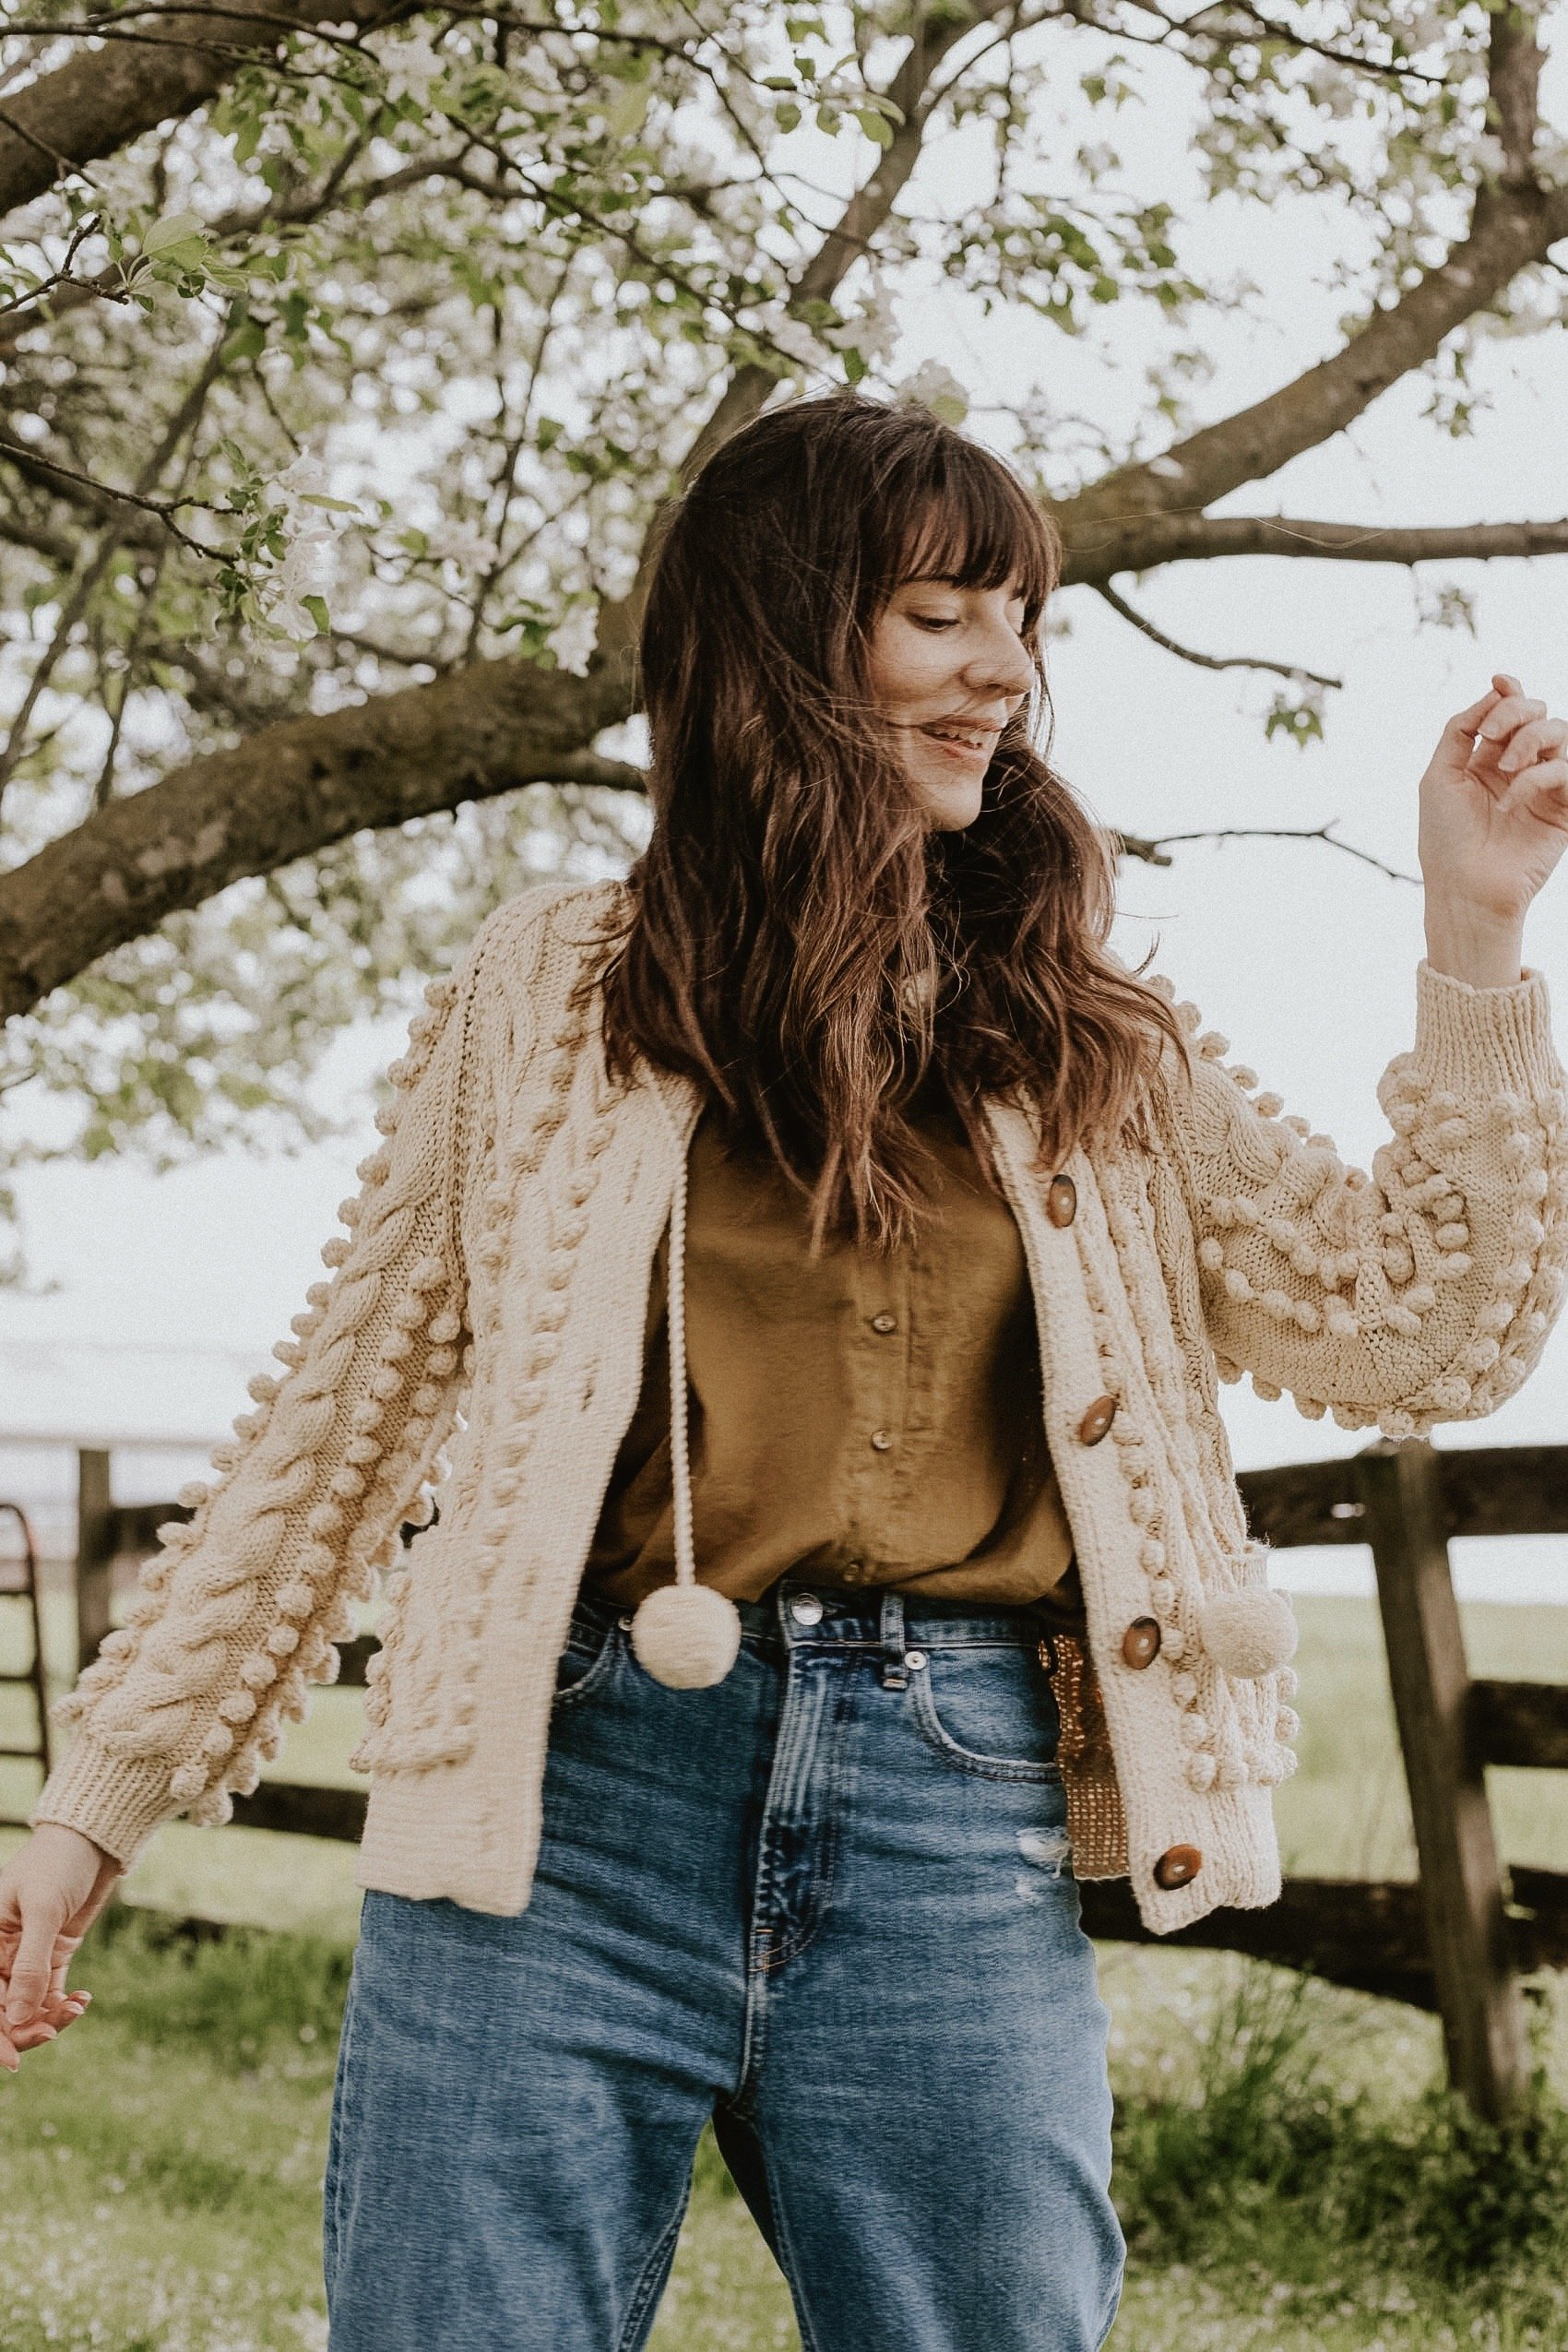 Doen Pomme Cardigan in cotton on Lancaster County Style Blogger on the farm